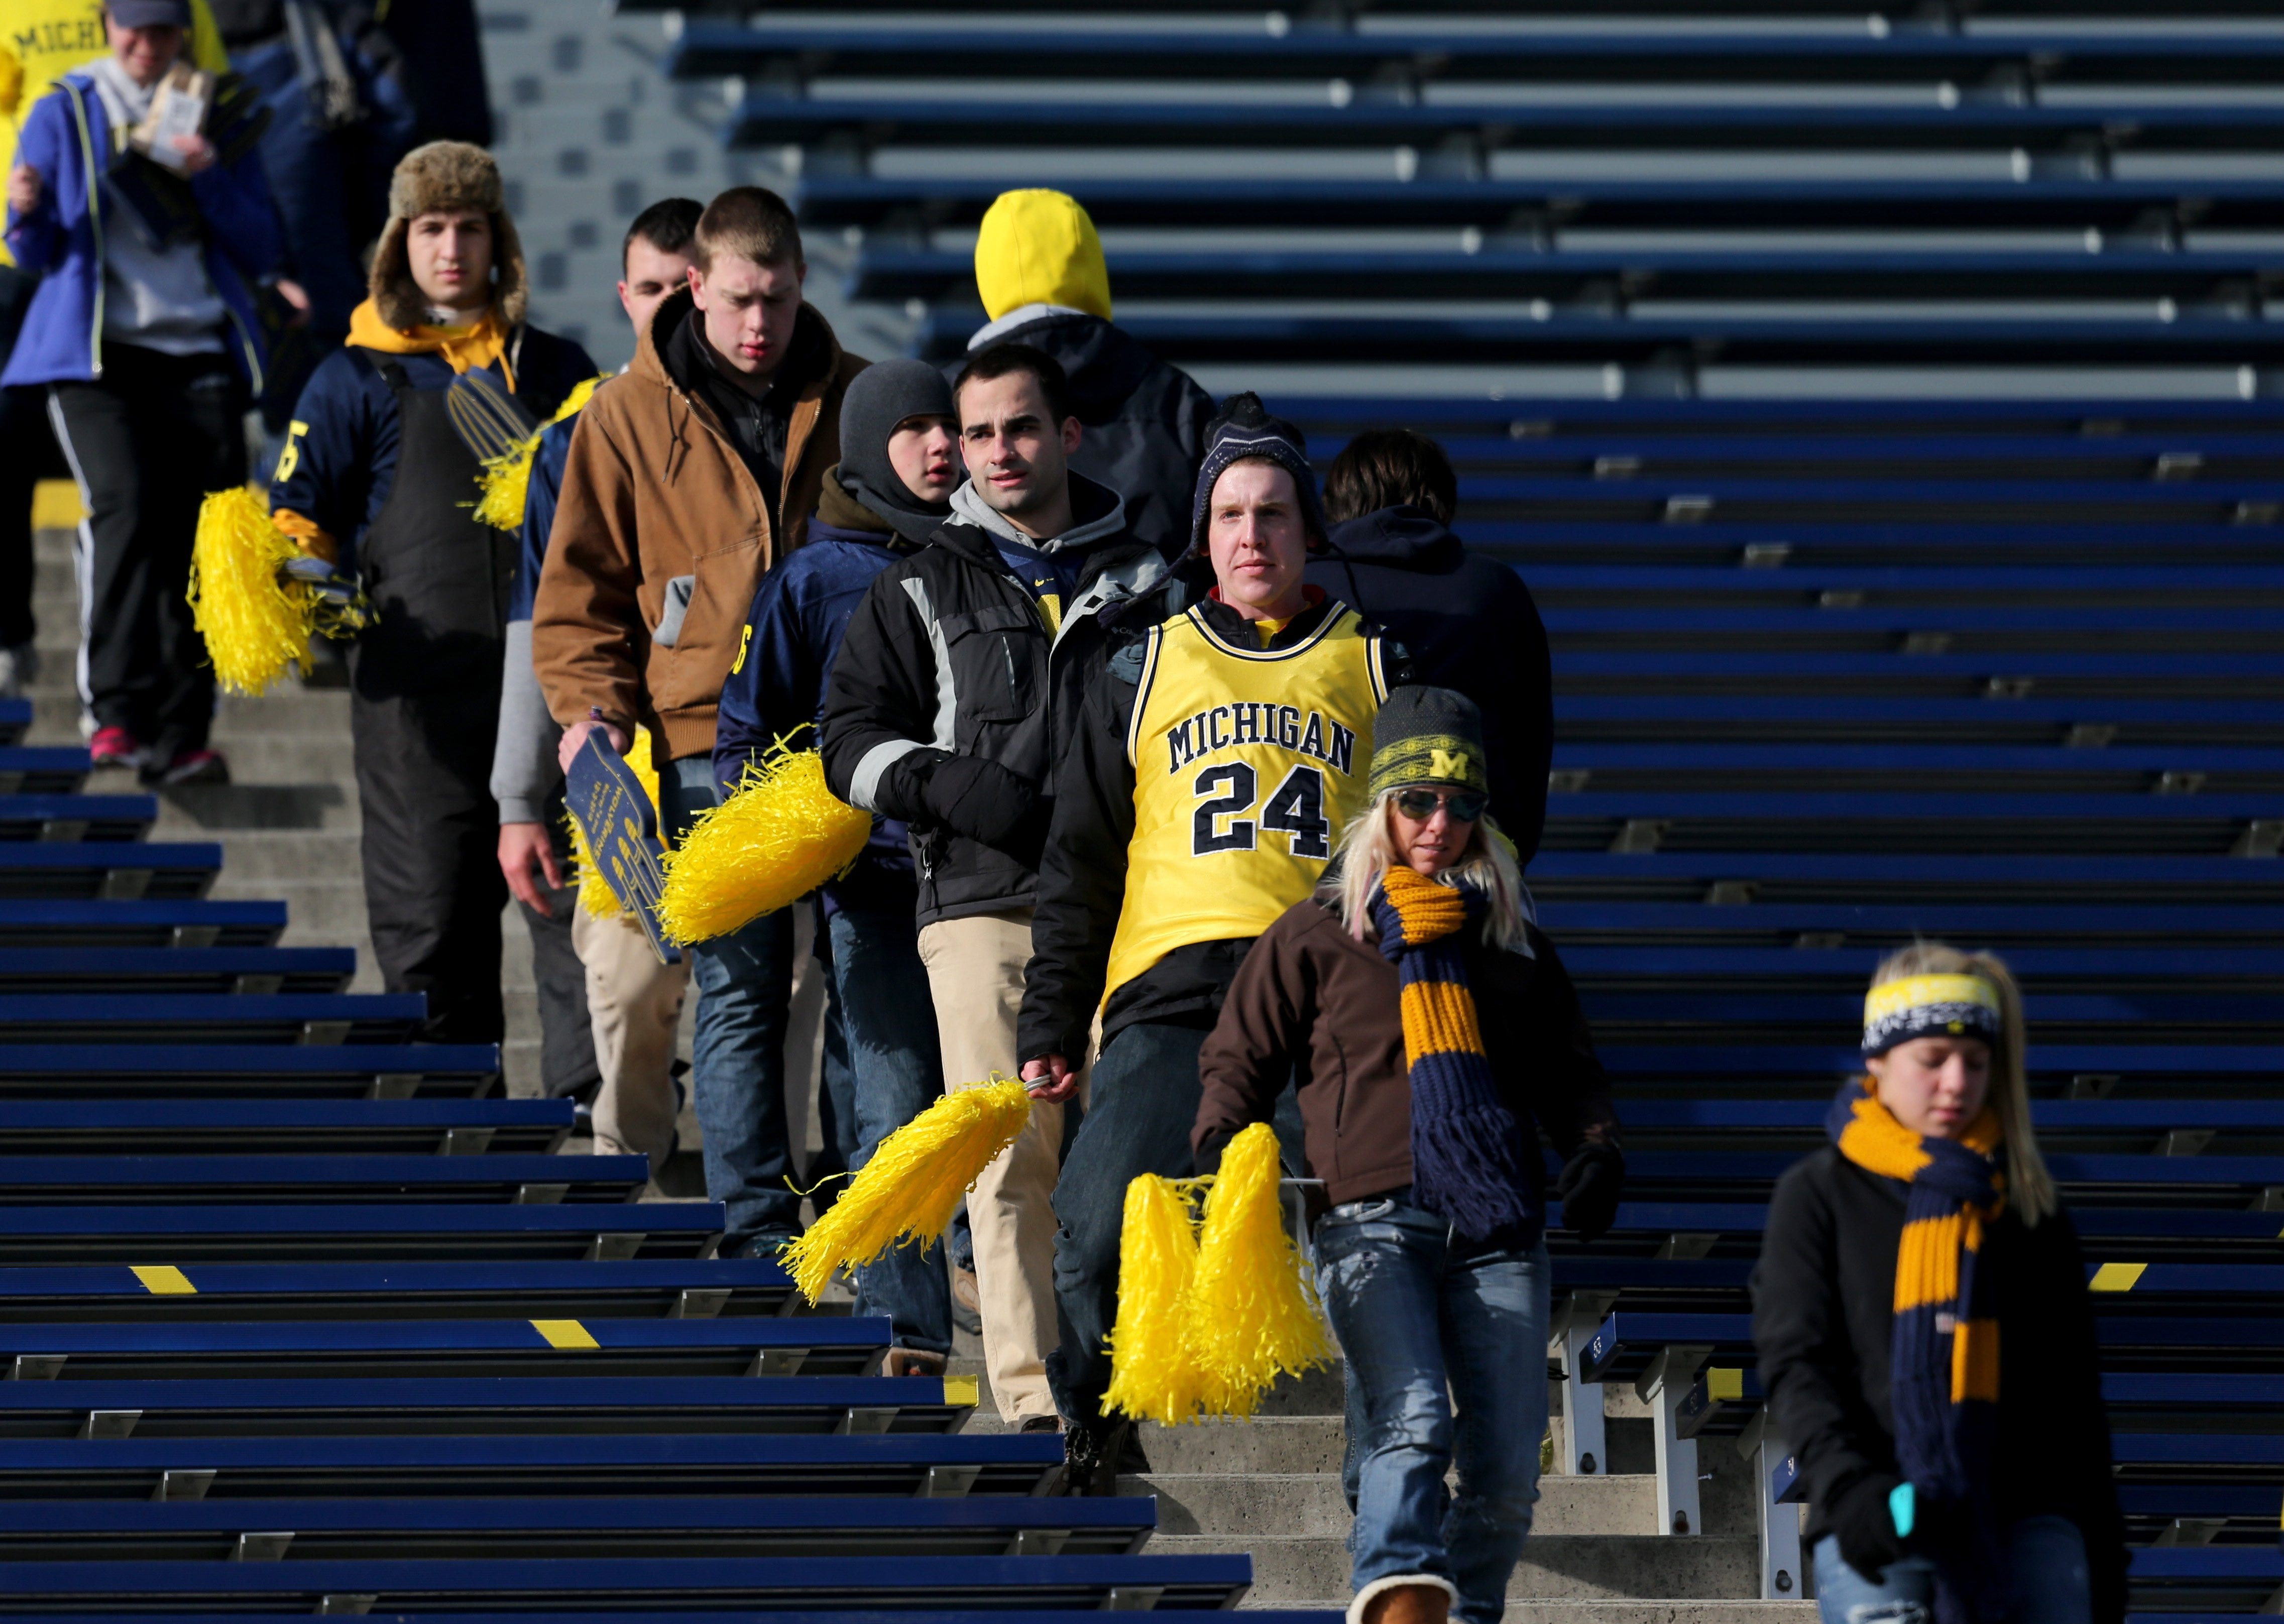 Michigan ditches dynamic pricing on football tickets | Detroit Free Press